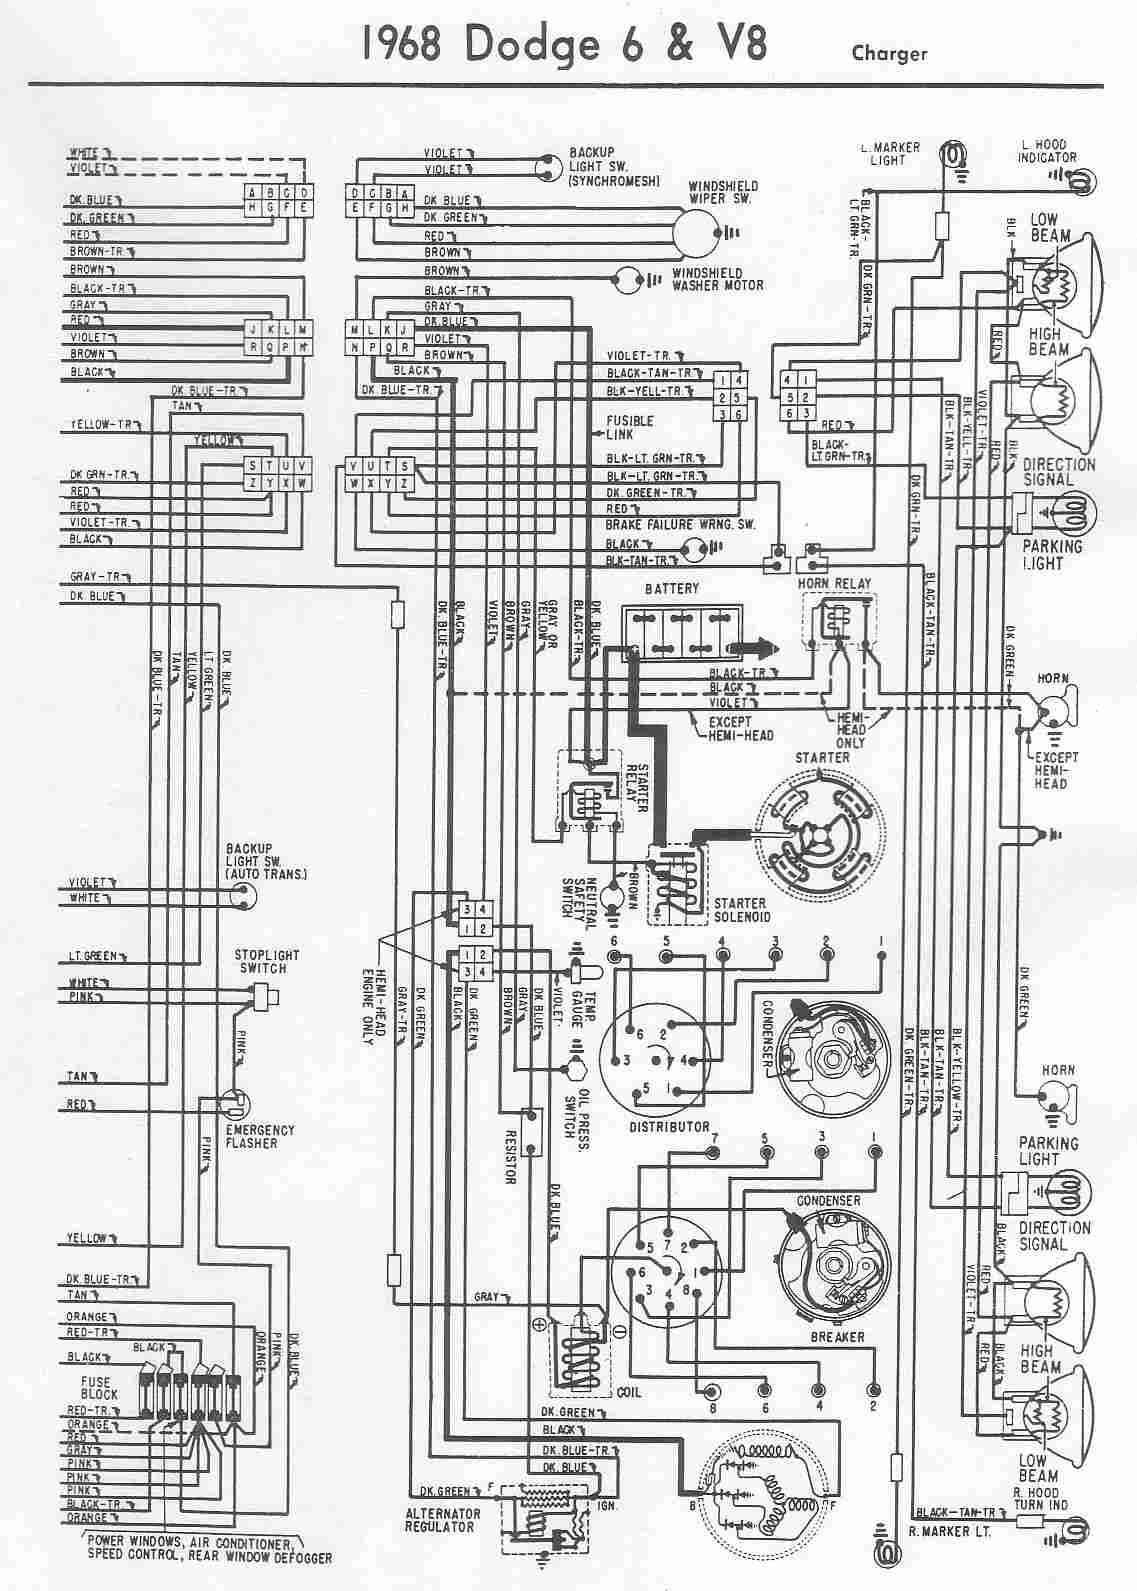 Dodge Car Manuals Wiring Diagrams Pdf Fault Codes 2003 Neon Fuse Box Download